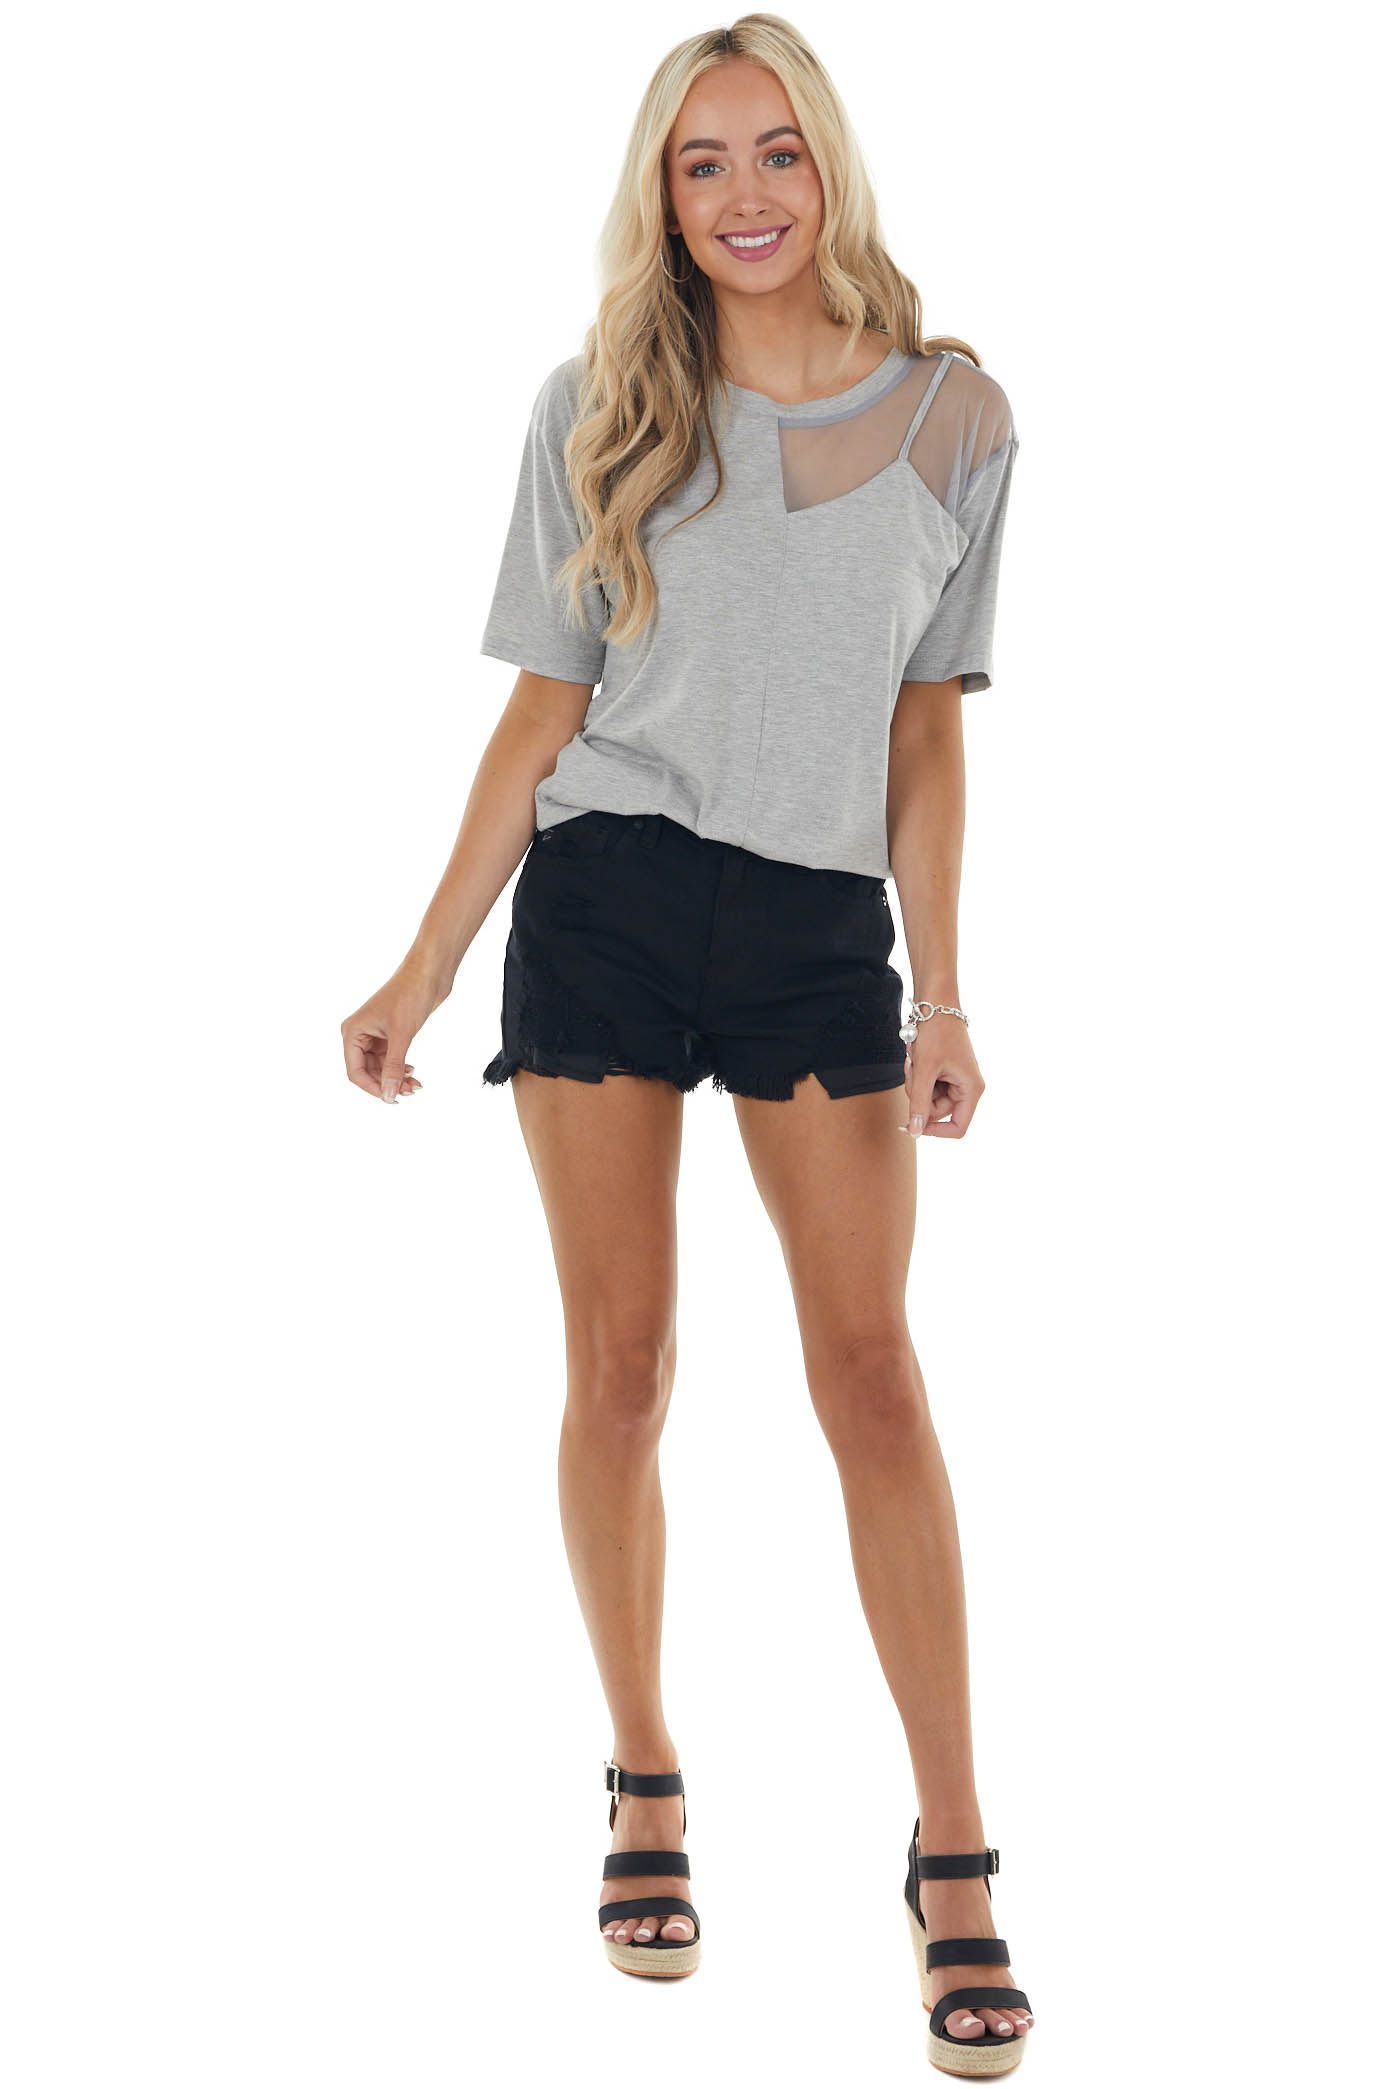 Heather Grey Short Sleeve Knit Top with Mesh Detail